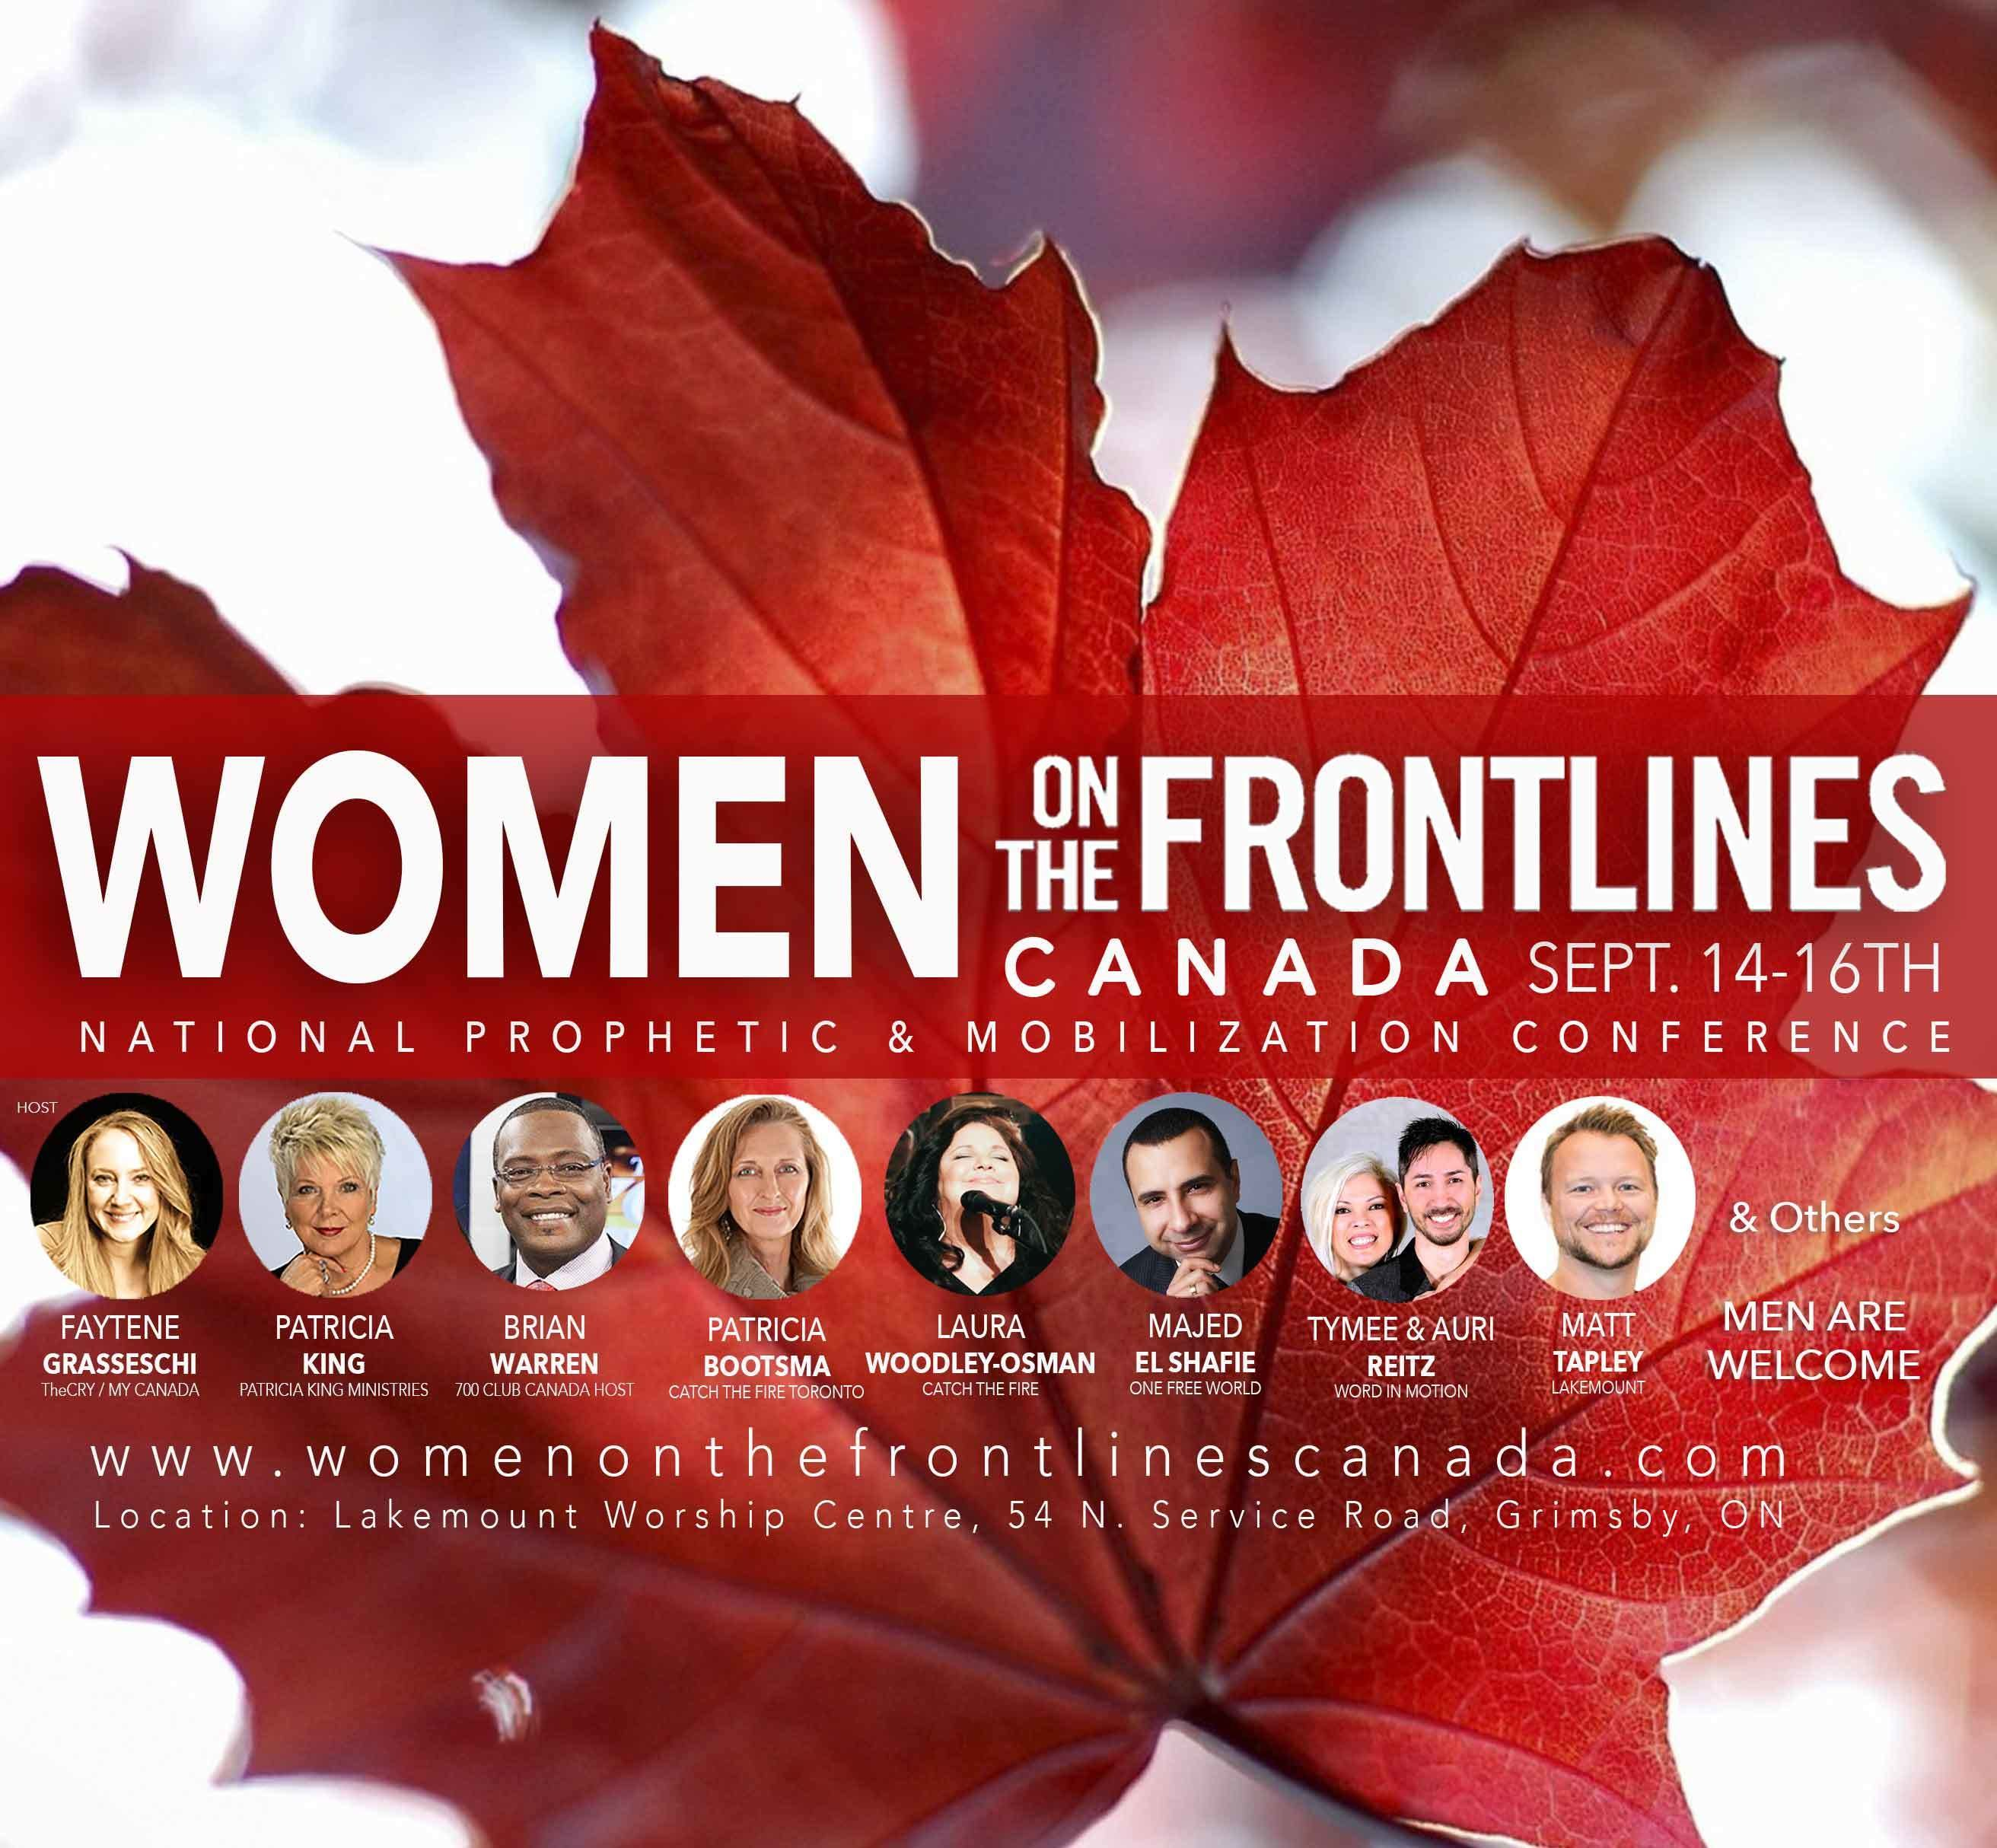 Women on the Frontlines Canada - MP3 Set by Digital Download 00002